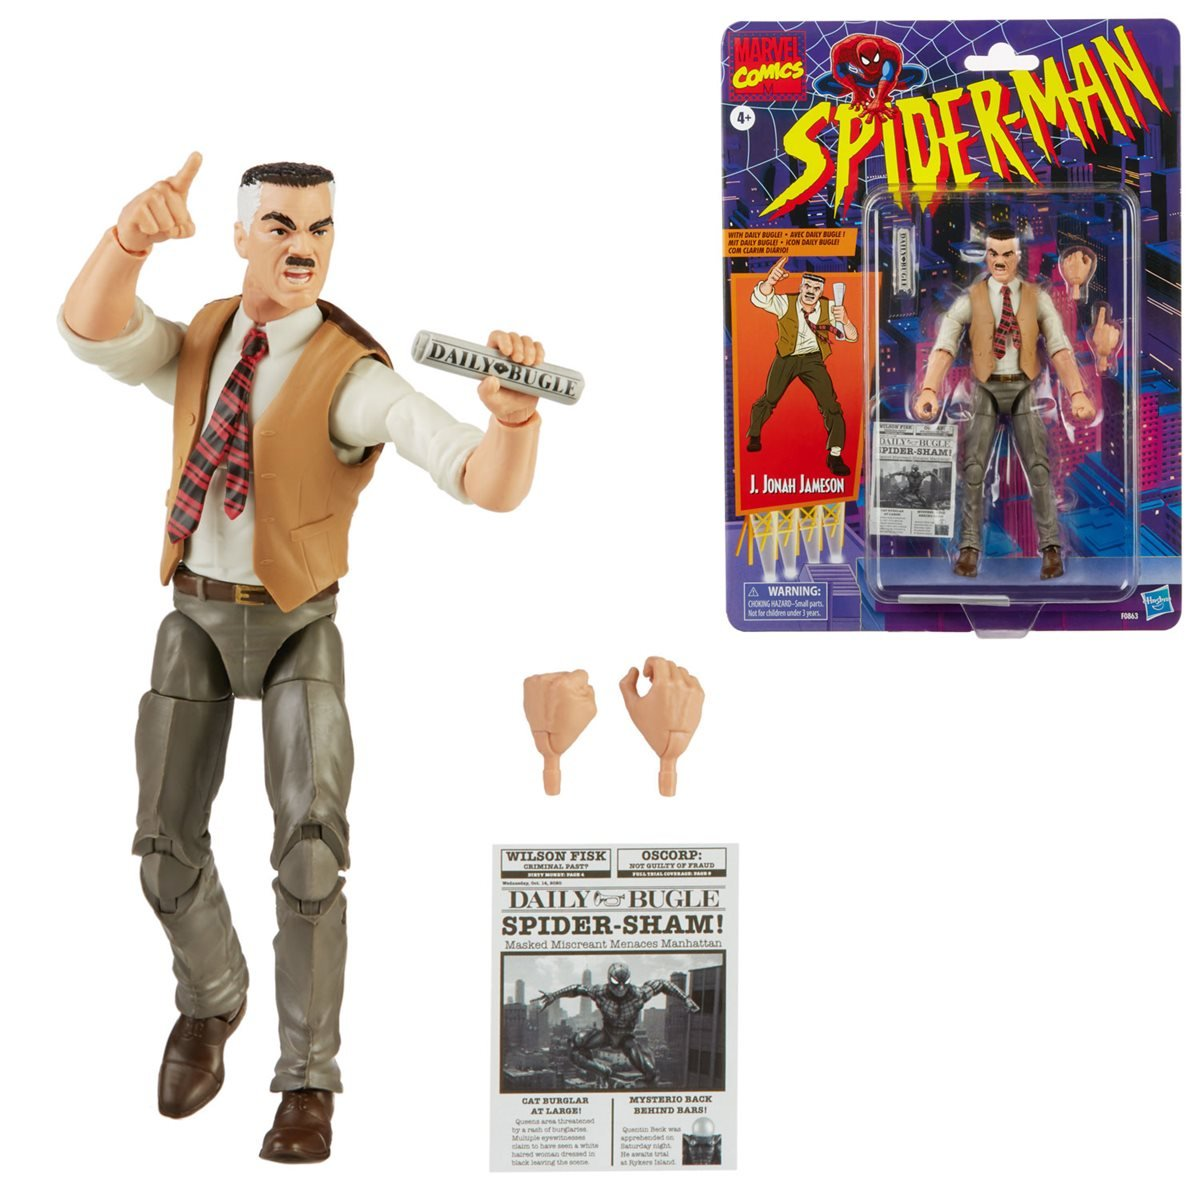 Hasbro Marvel Legends Spider-Man: The Animated Series J. Jonah Jameson Figure Pre-Orders